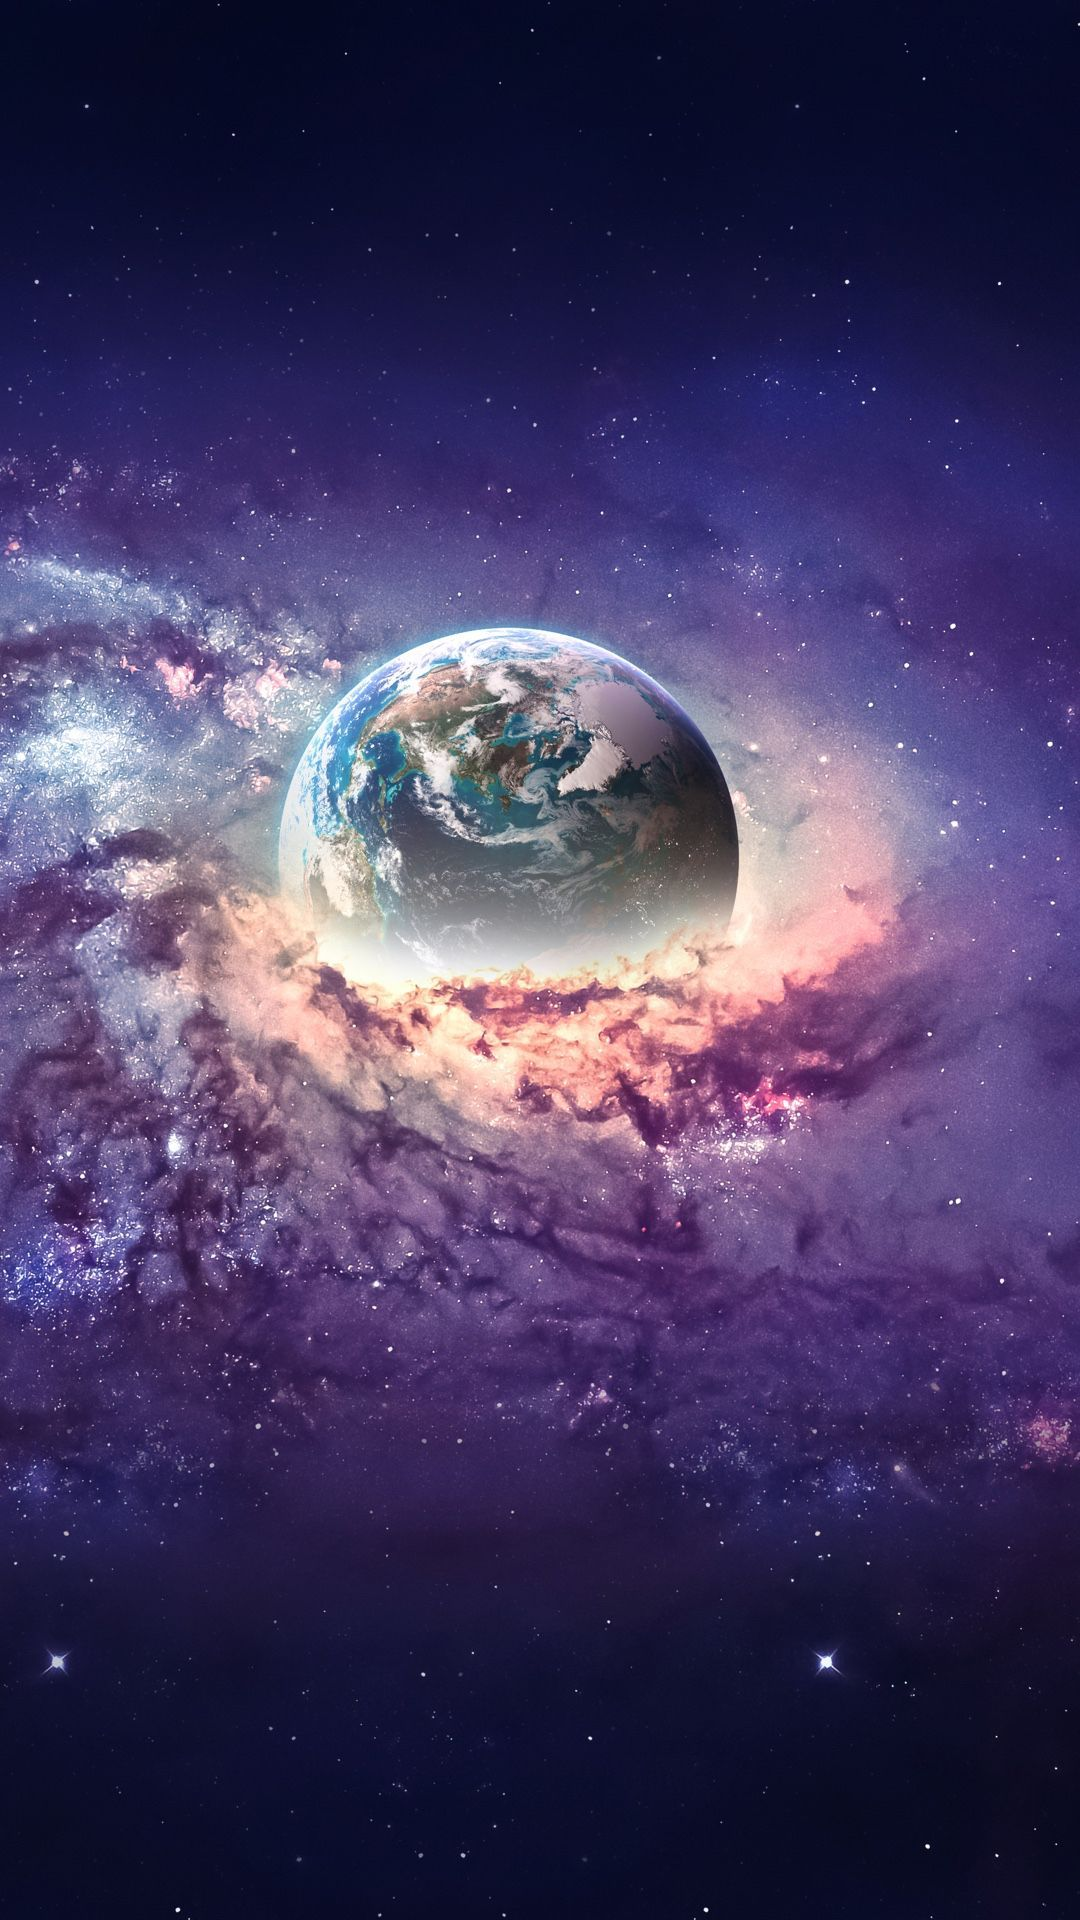 Space Wallpaper In 2020 Space Painting Galaxy Space Painting Galaxy Wallpaper